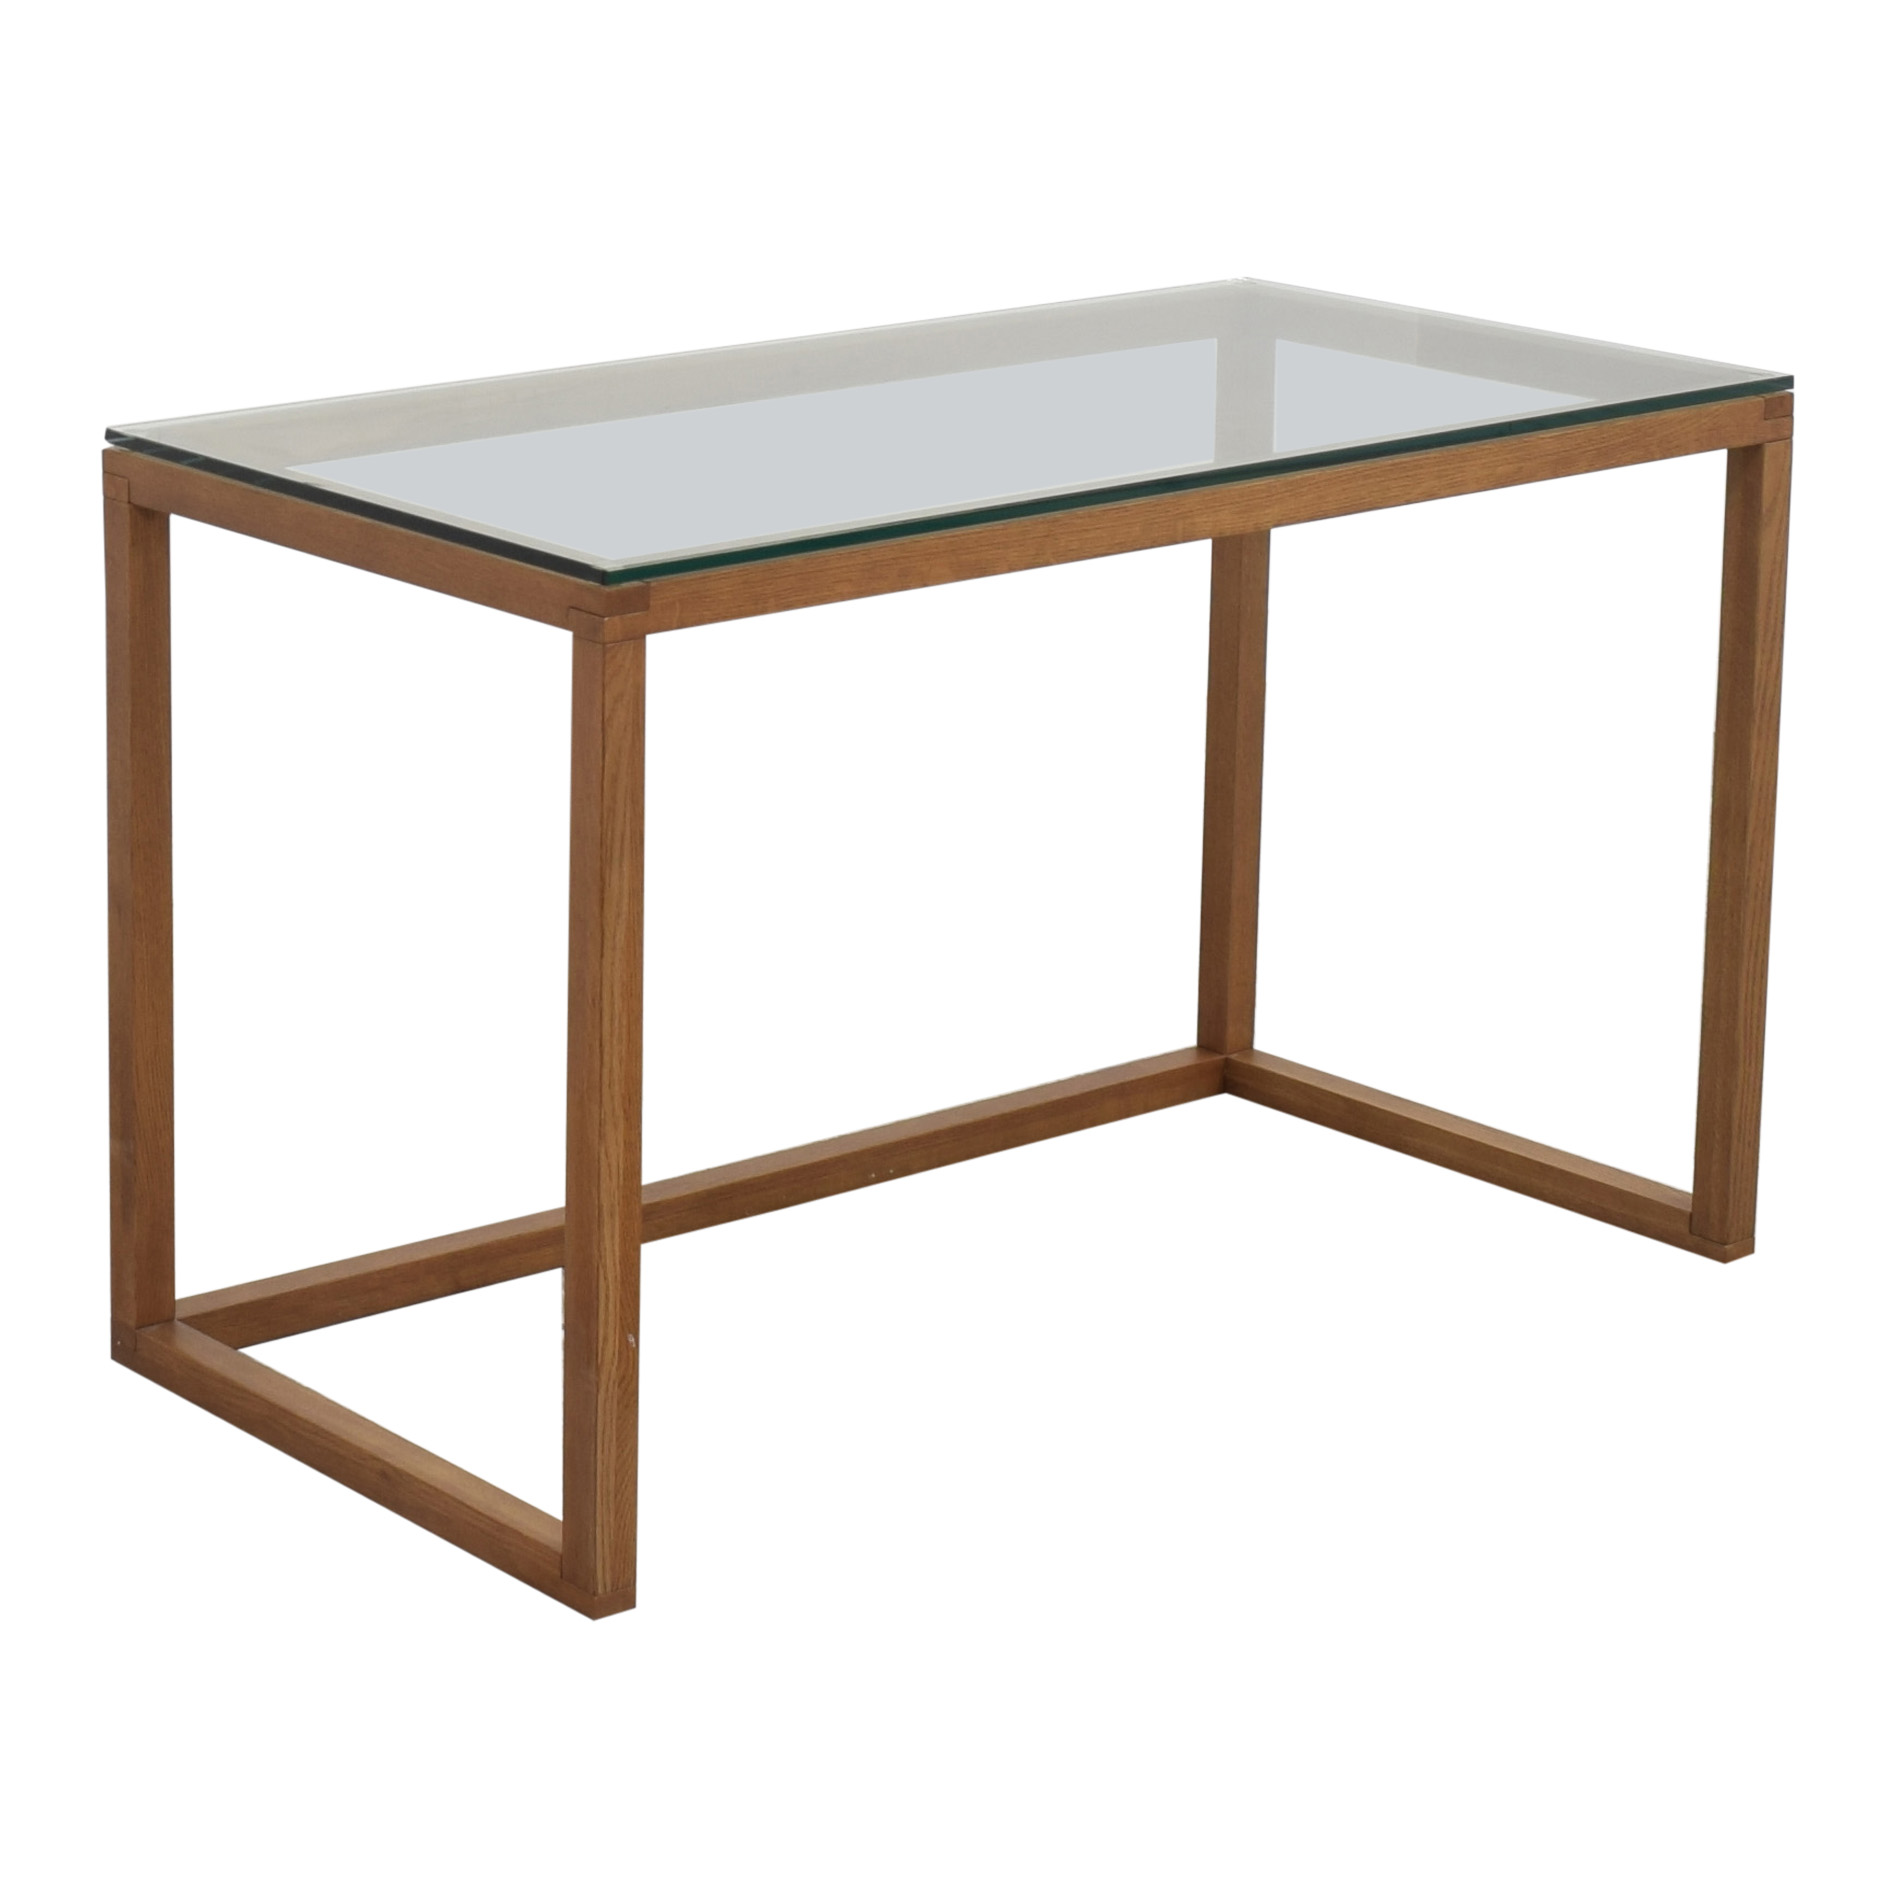 Crate & Barrel Crate & Barrel Anderson Desk